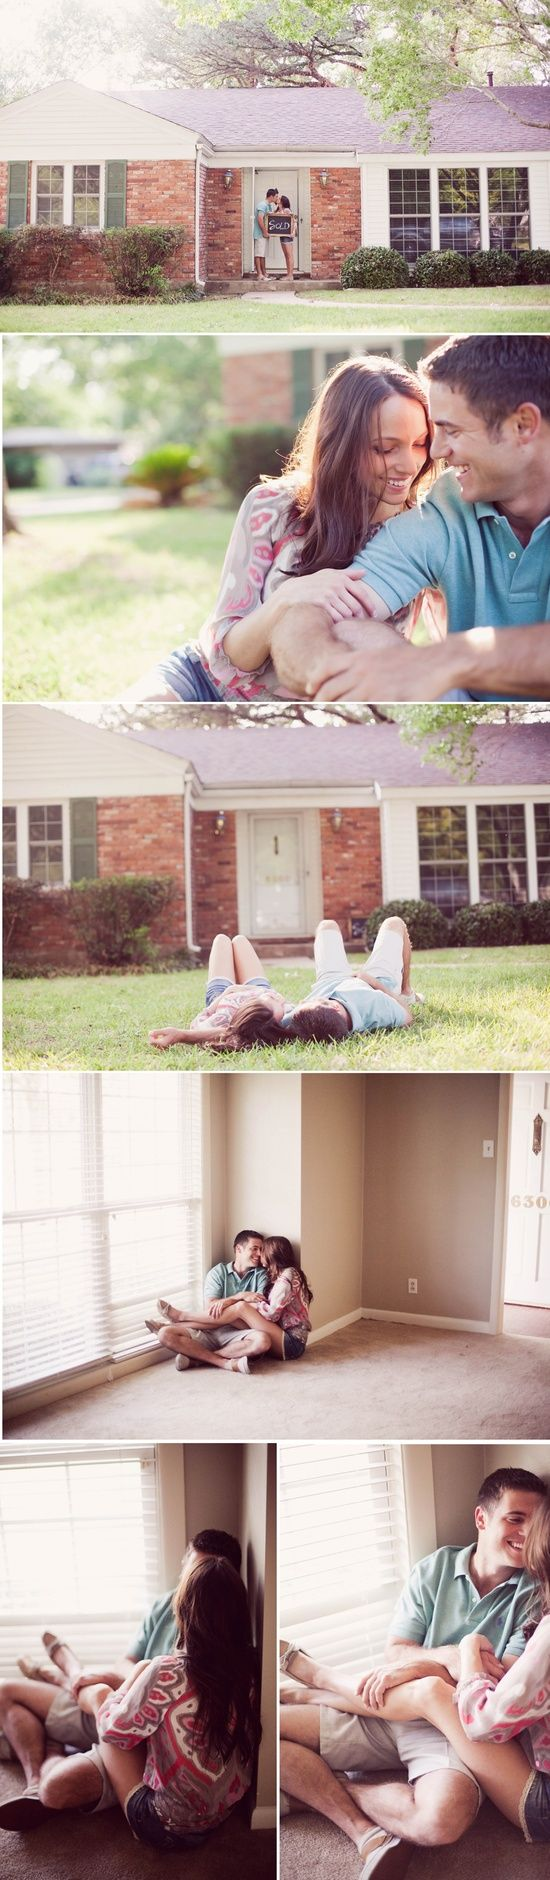 First home pics. What a cute idea!! @ Home DIY Remodeling